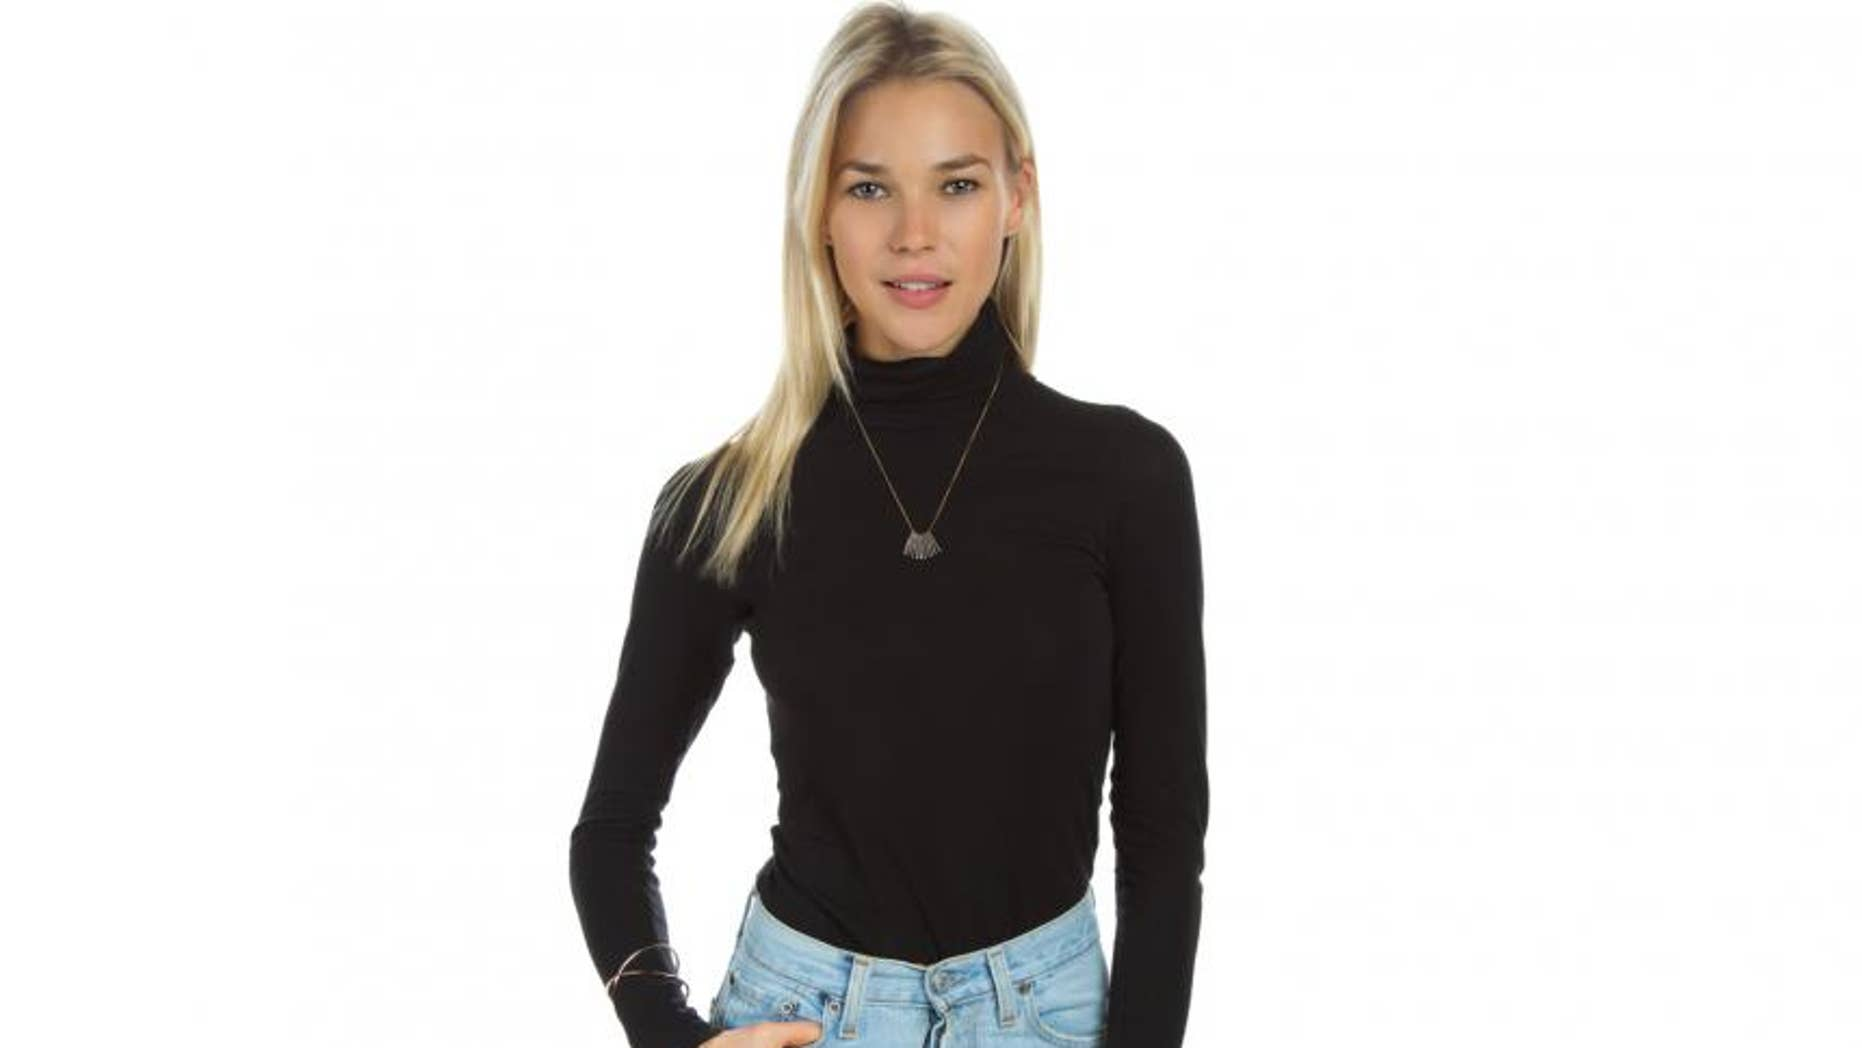 Nowadays she only wears turtlenecks. (Photo credit: FNM)